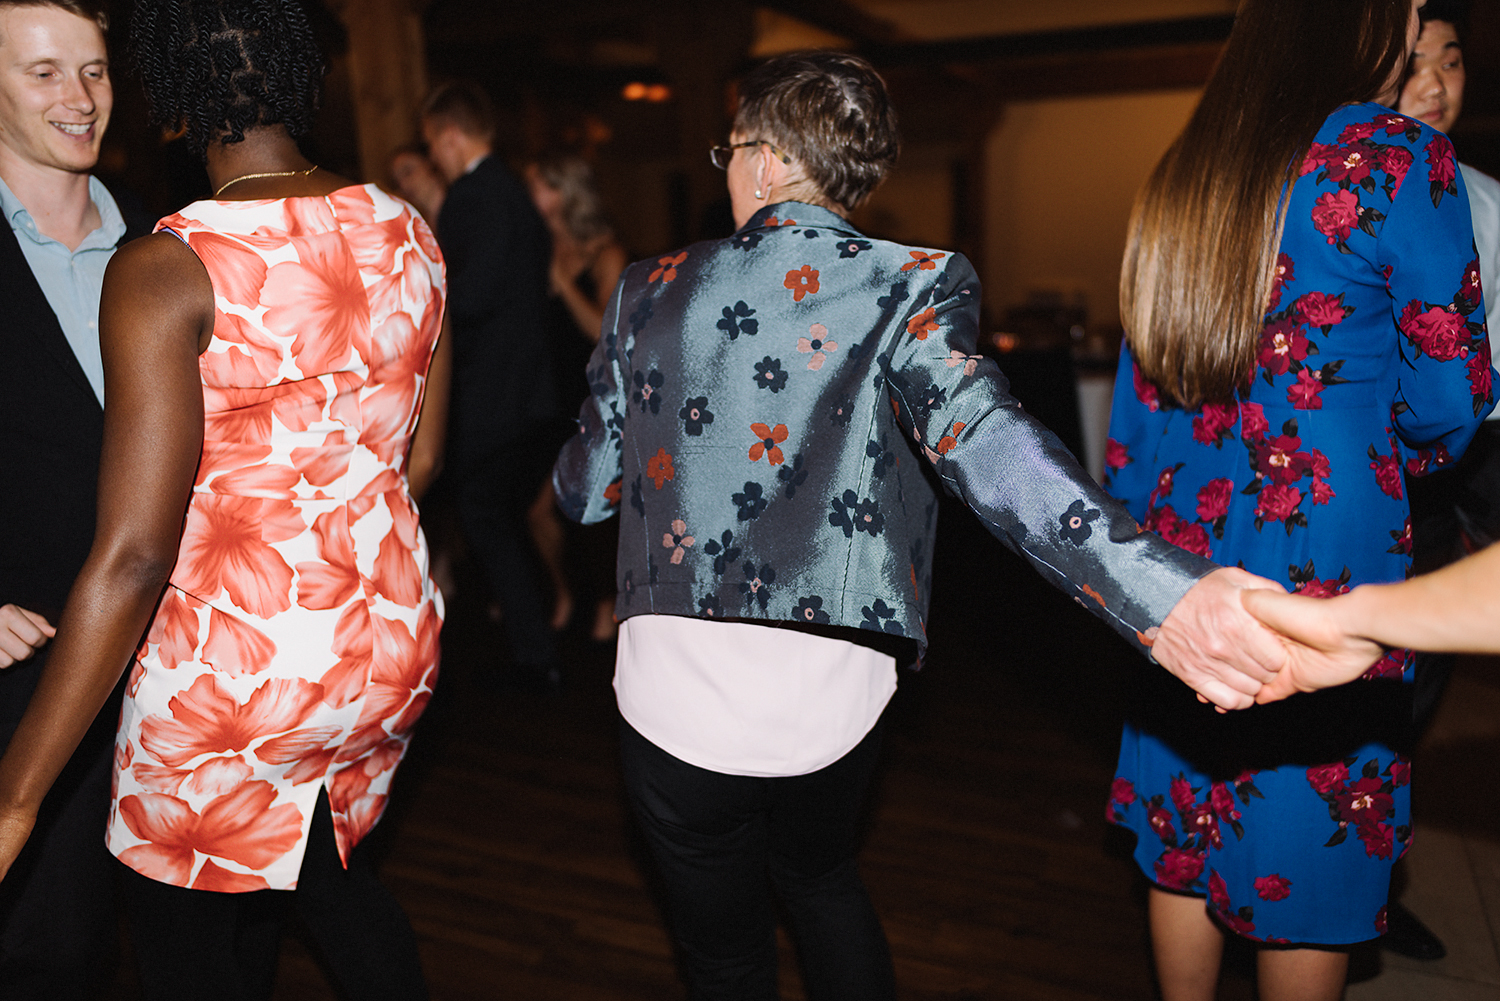 guests-dancing-bride-and-mom-dancing-together-partying-candid-moments-toronto's-best-analog-documentary-wedding-photographers-candid-photography-london-ontario-wedding-inspiration.jpg